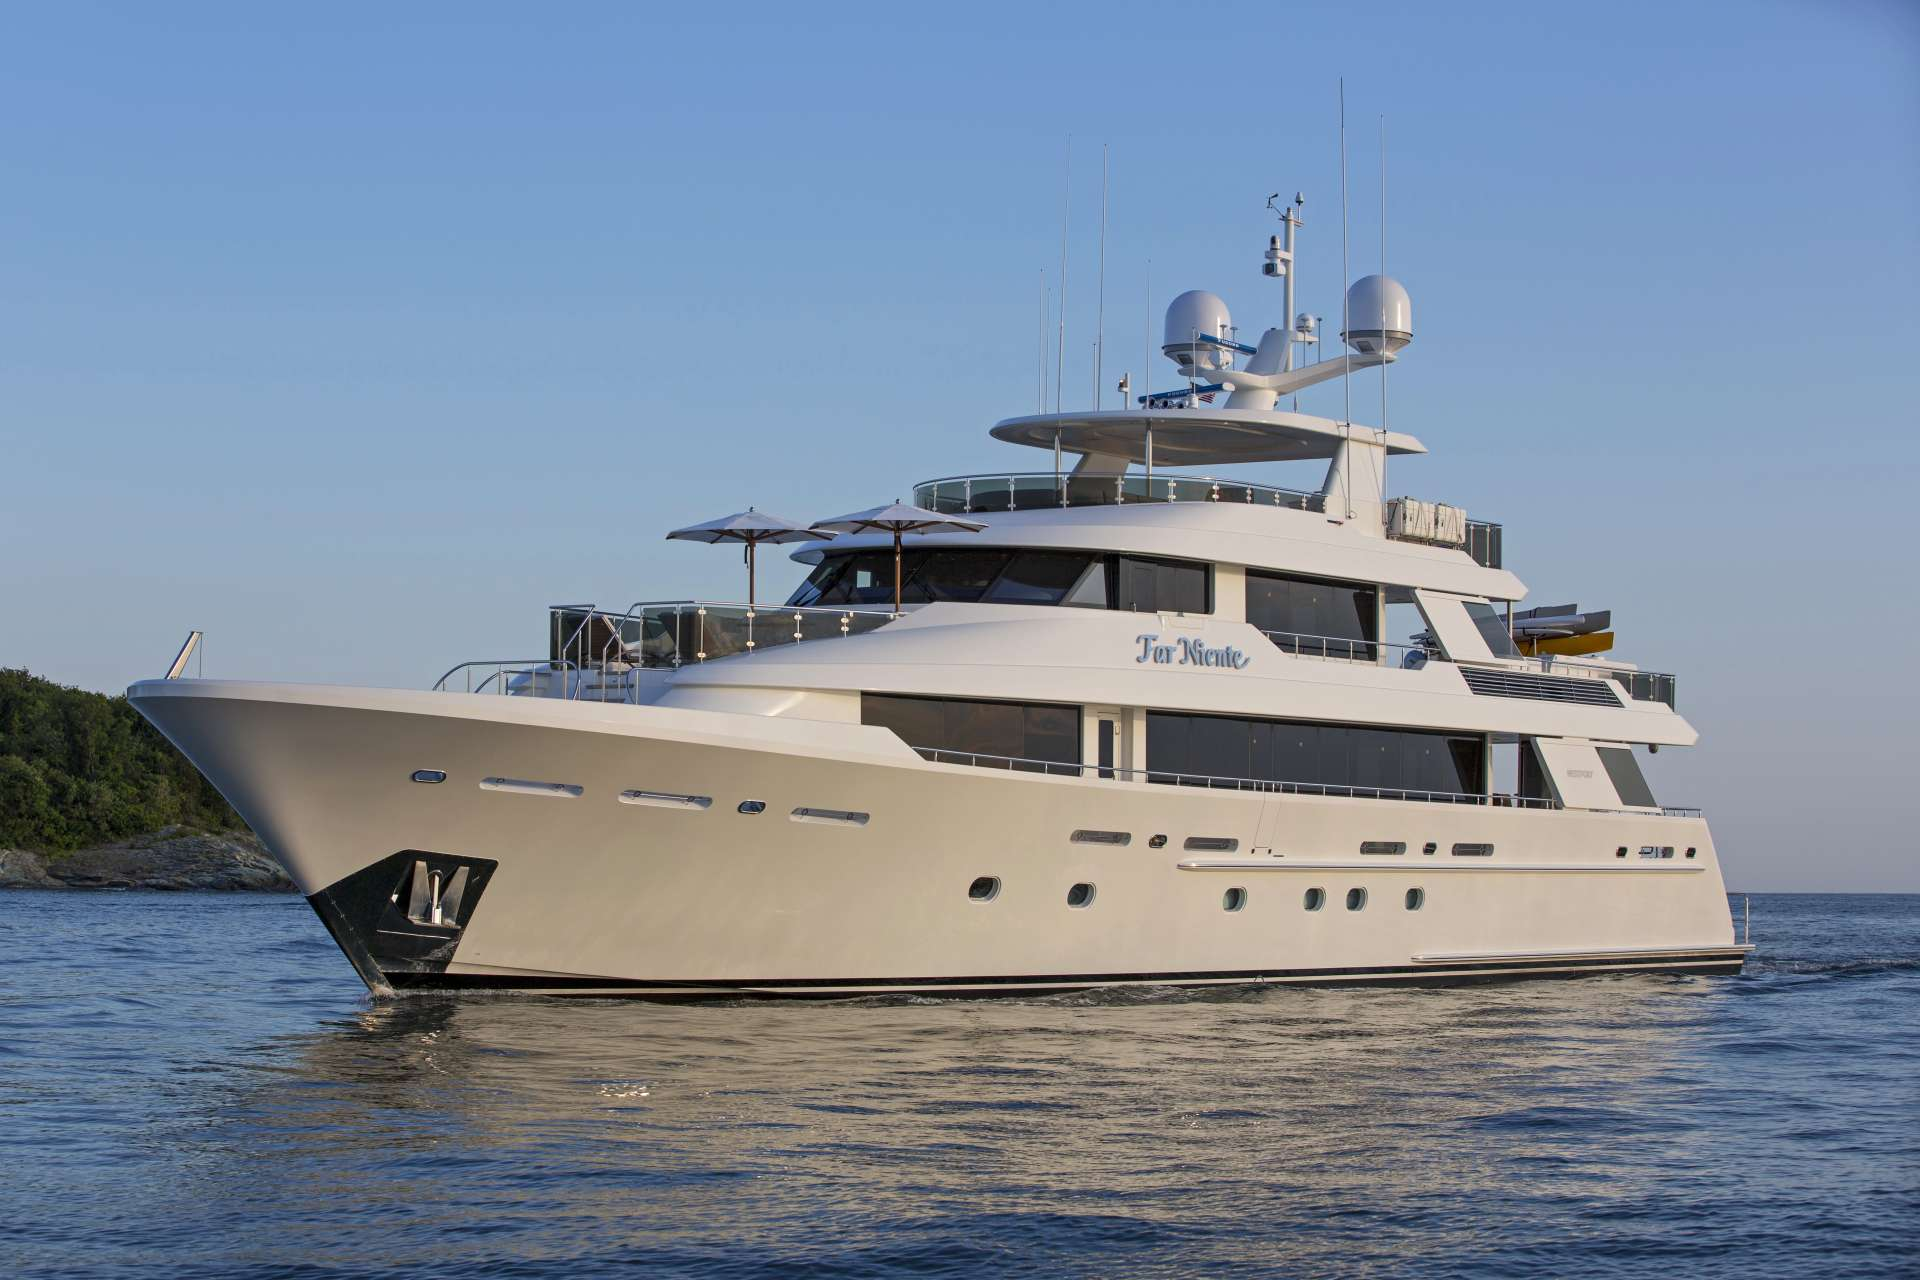 Power Yacht FAR NIENTE